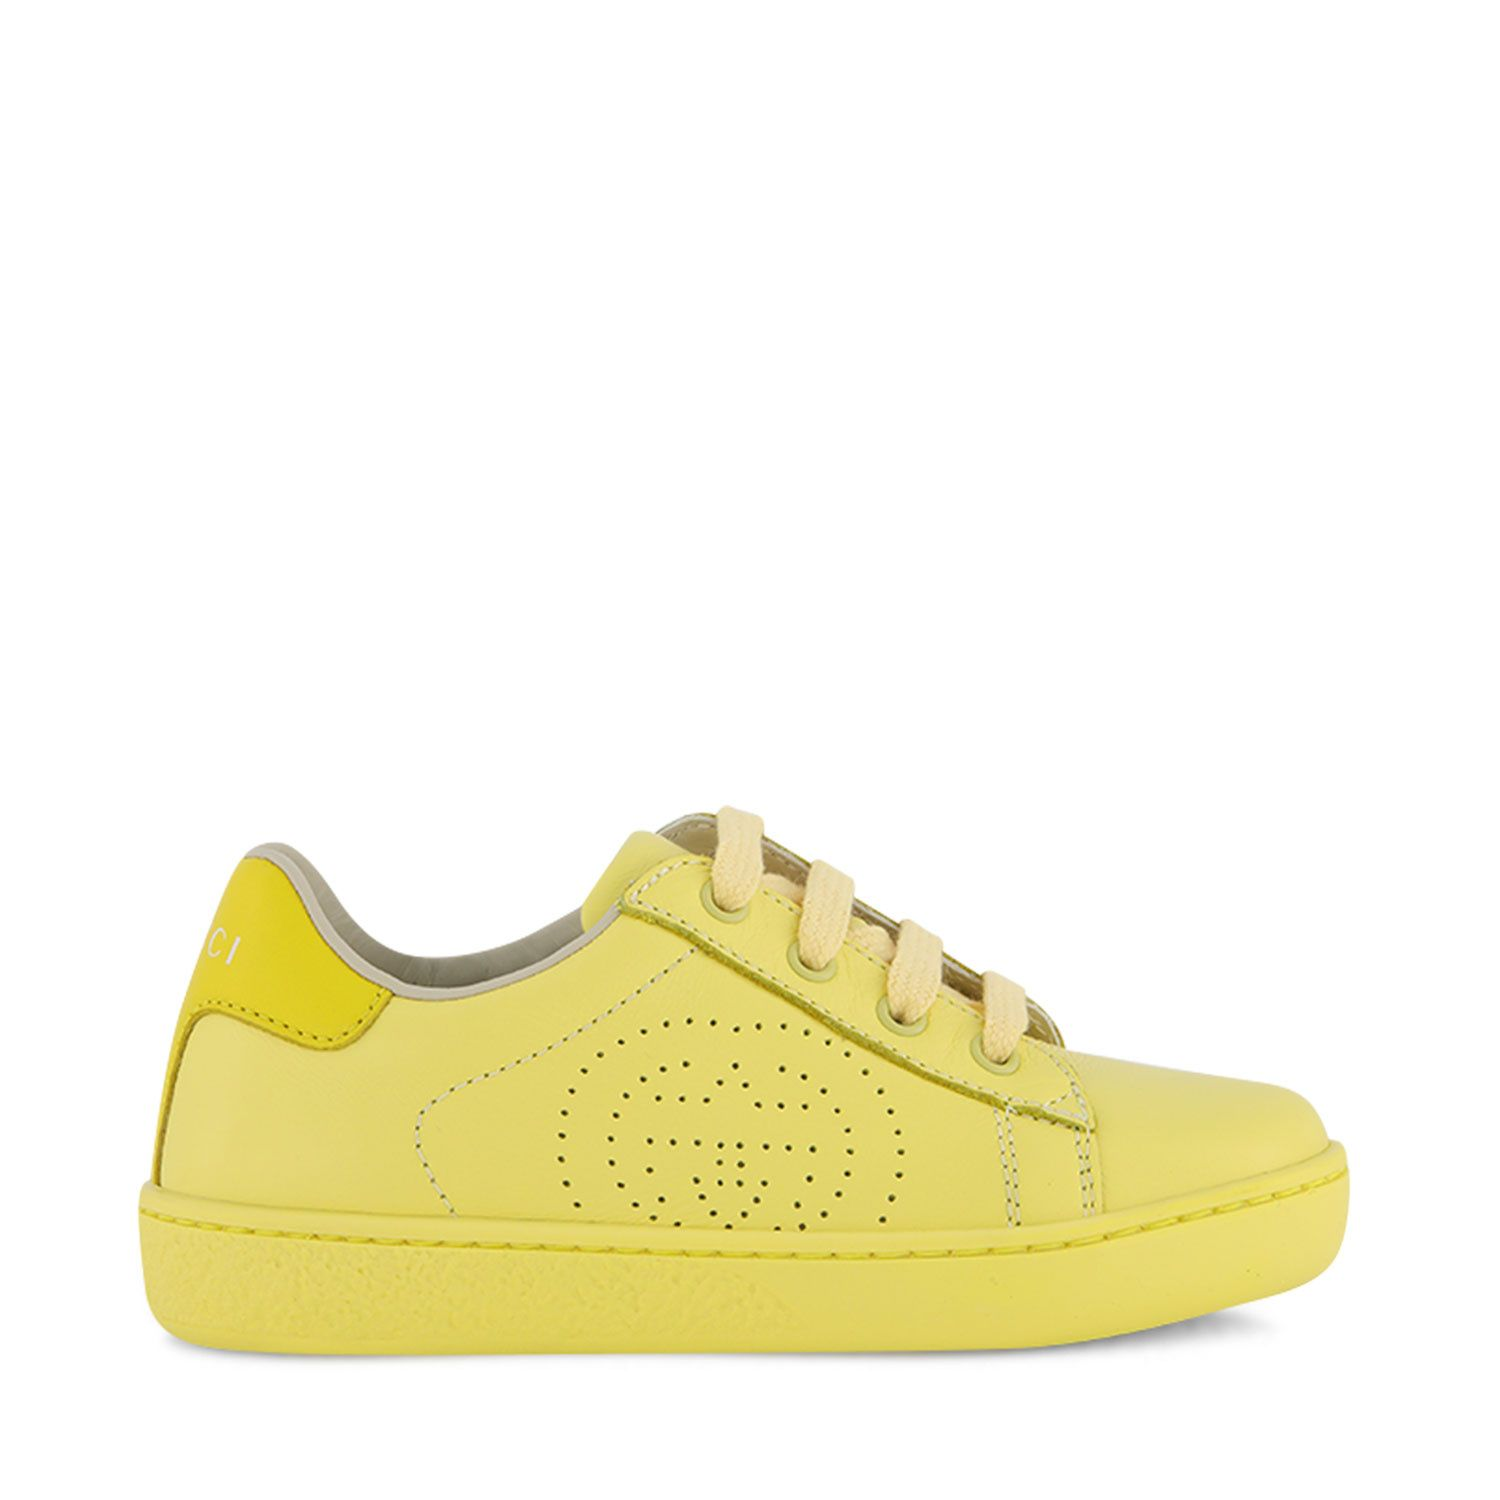 Picture of Gucci 626624 kids sneakers yellow